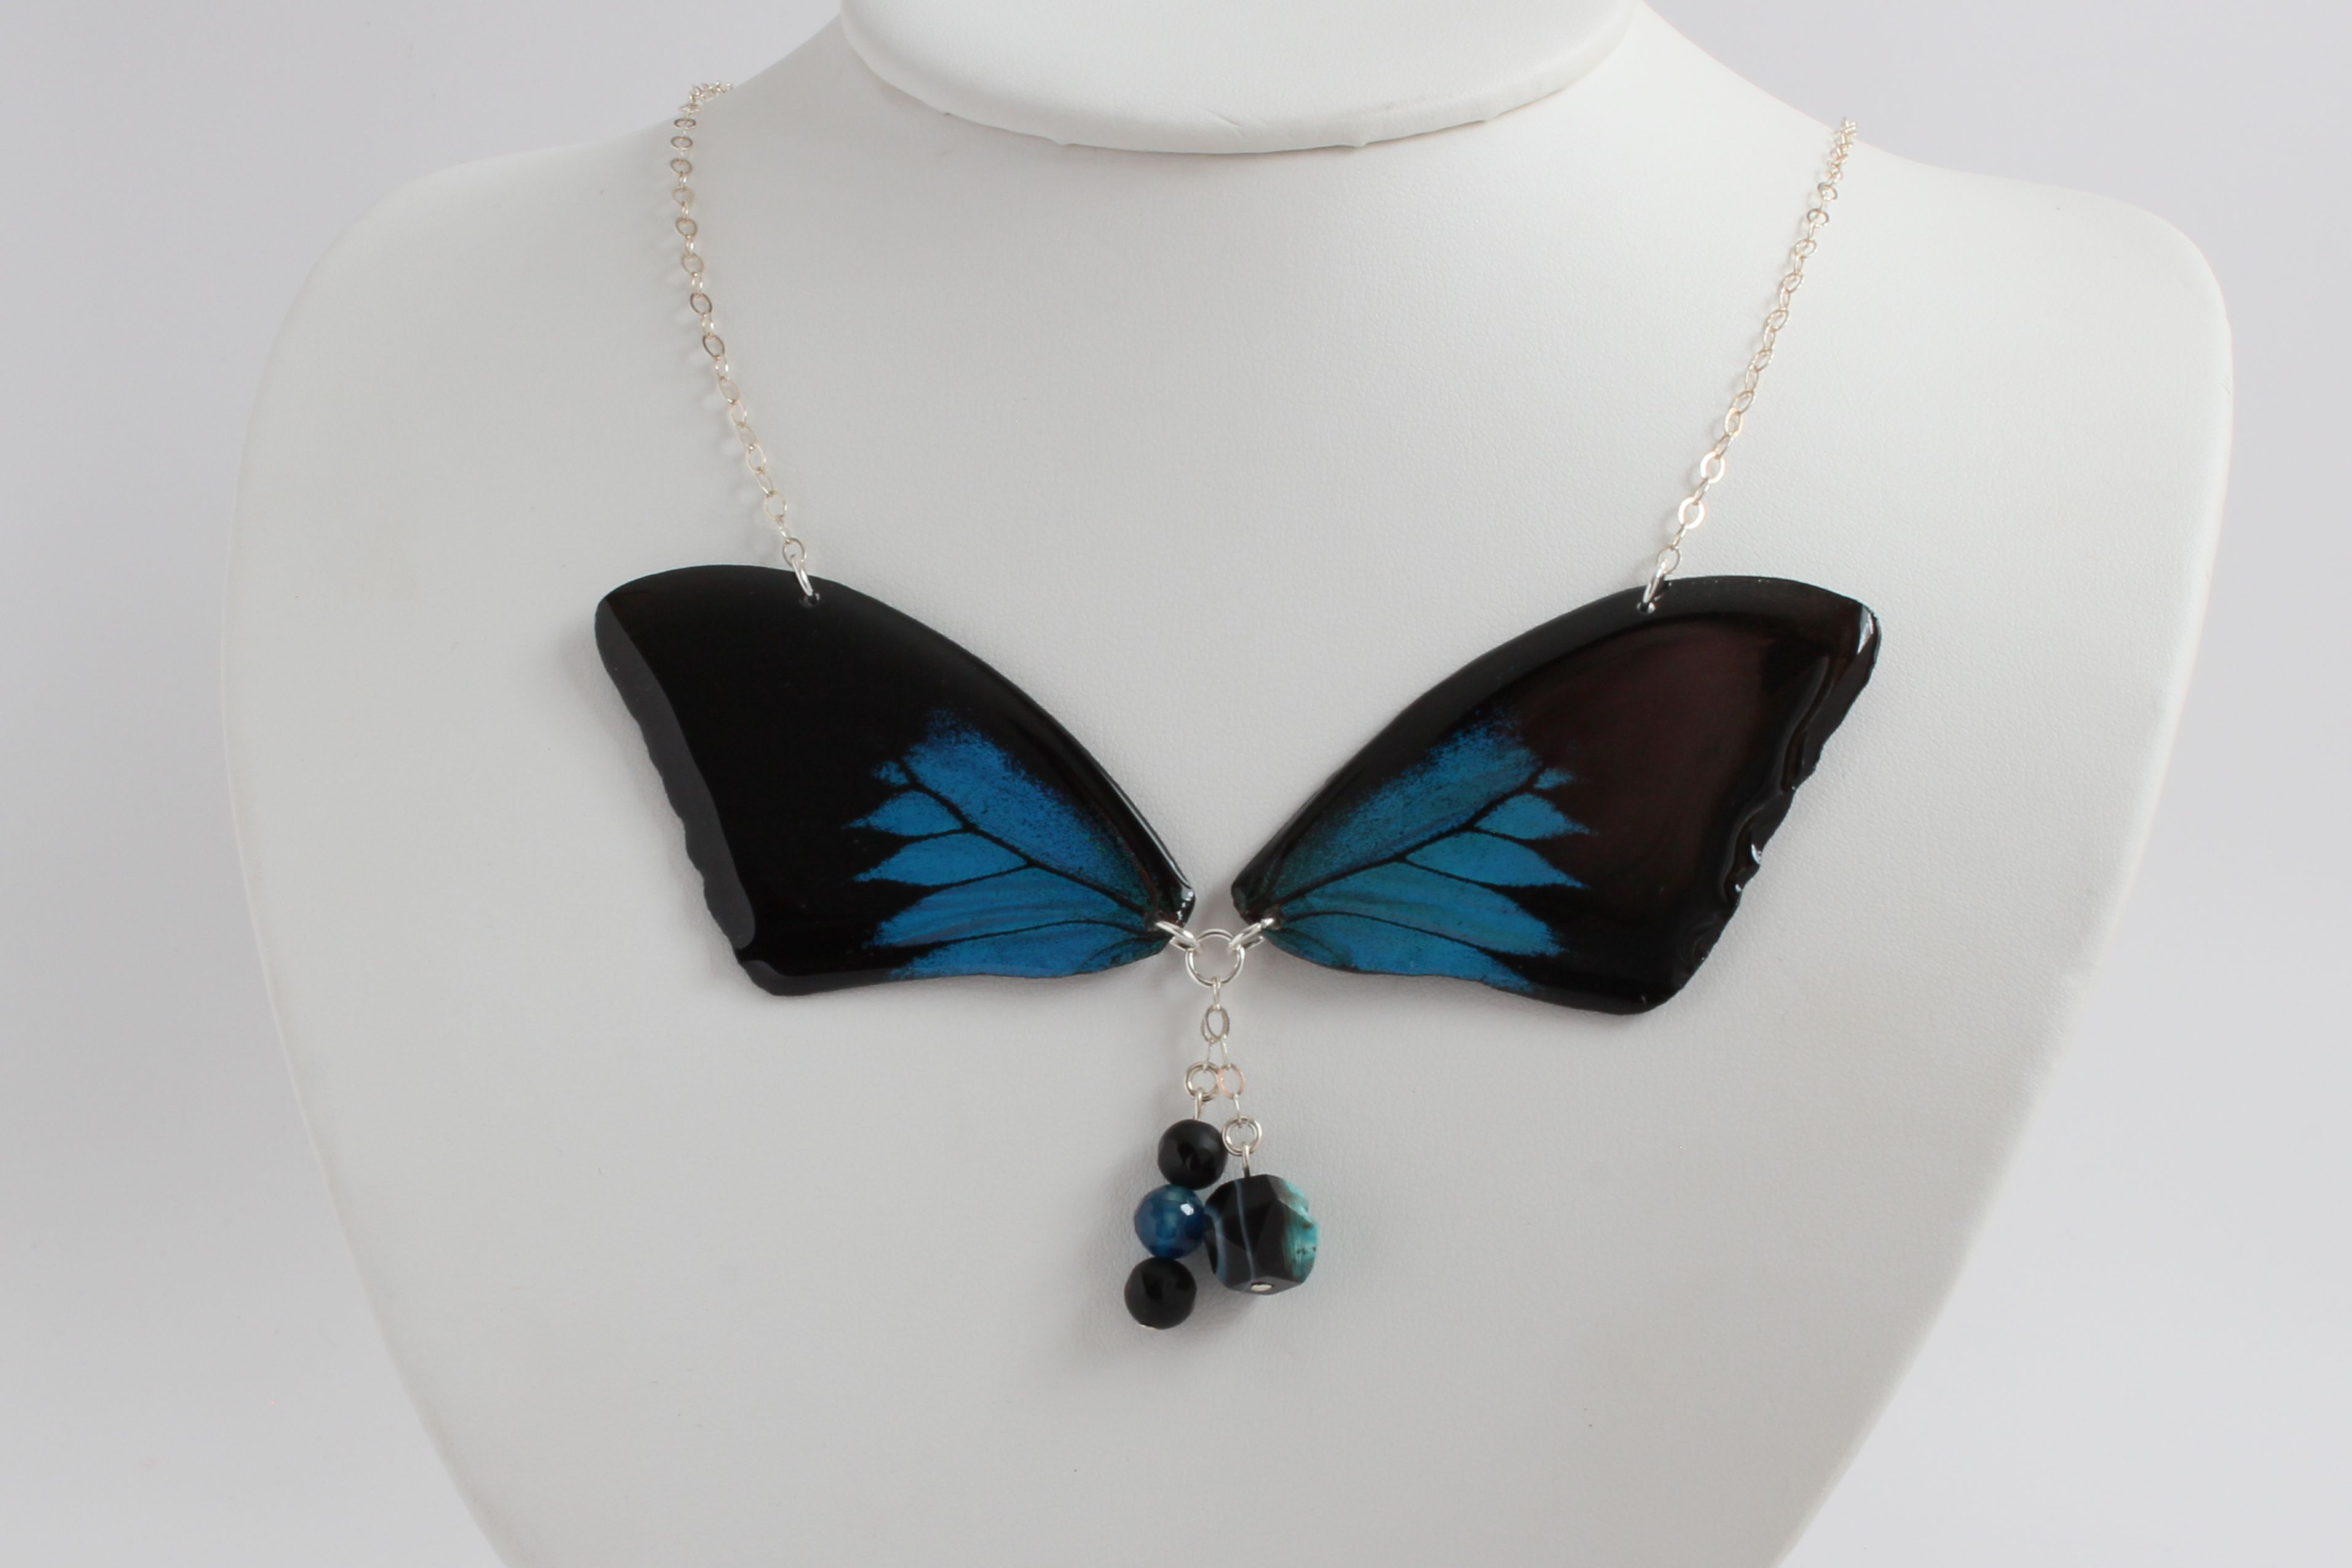 Blue Bottle Butterfly Necklace This butterfly is native to Indonesia